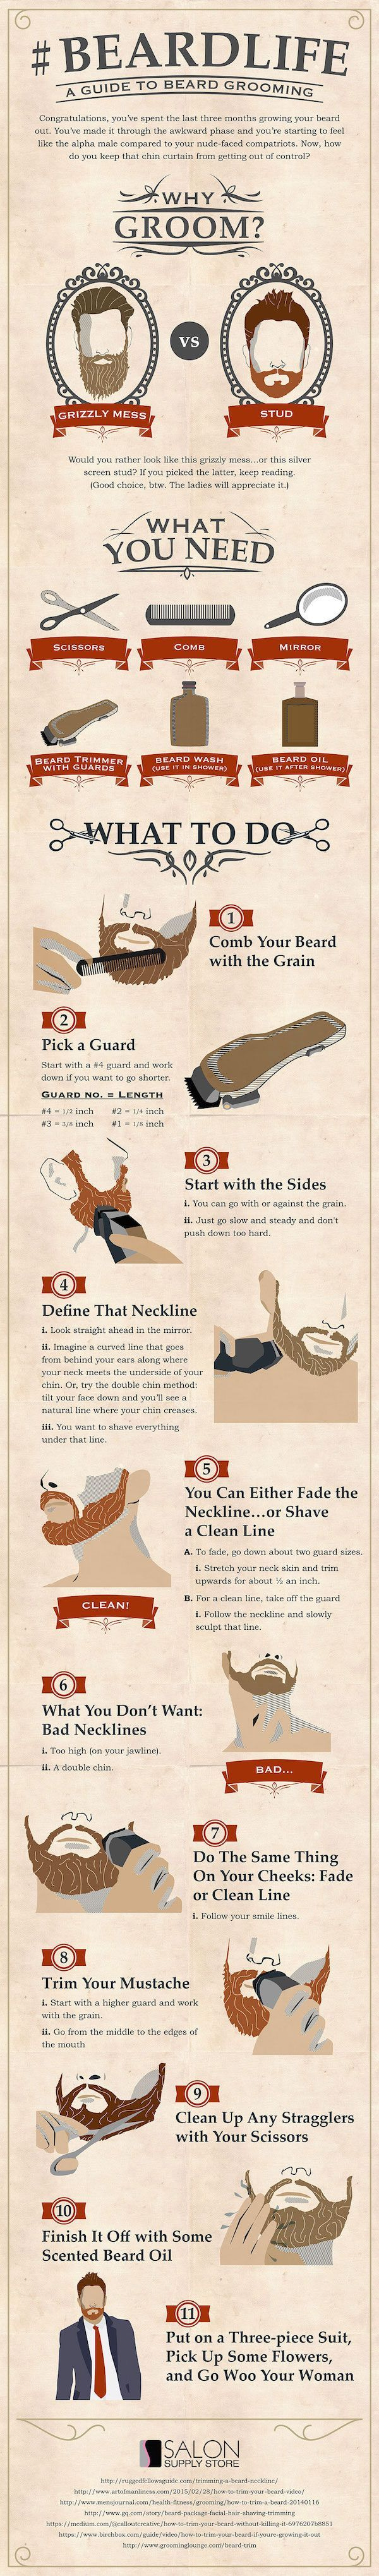 Infographic: A Handy Men's Guide To Keeping Your Beard Well-Groomed